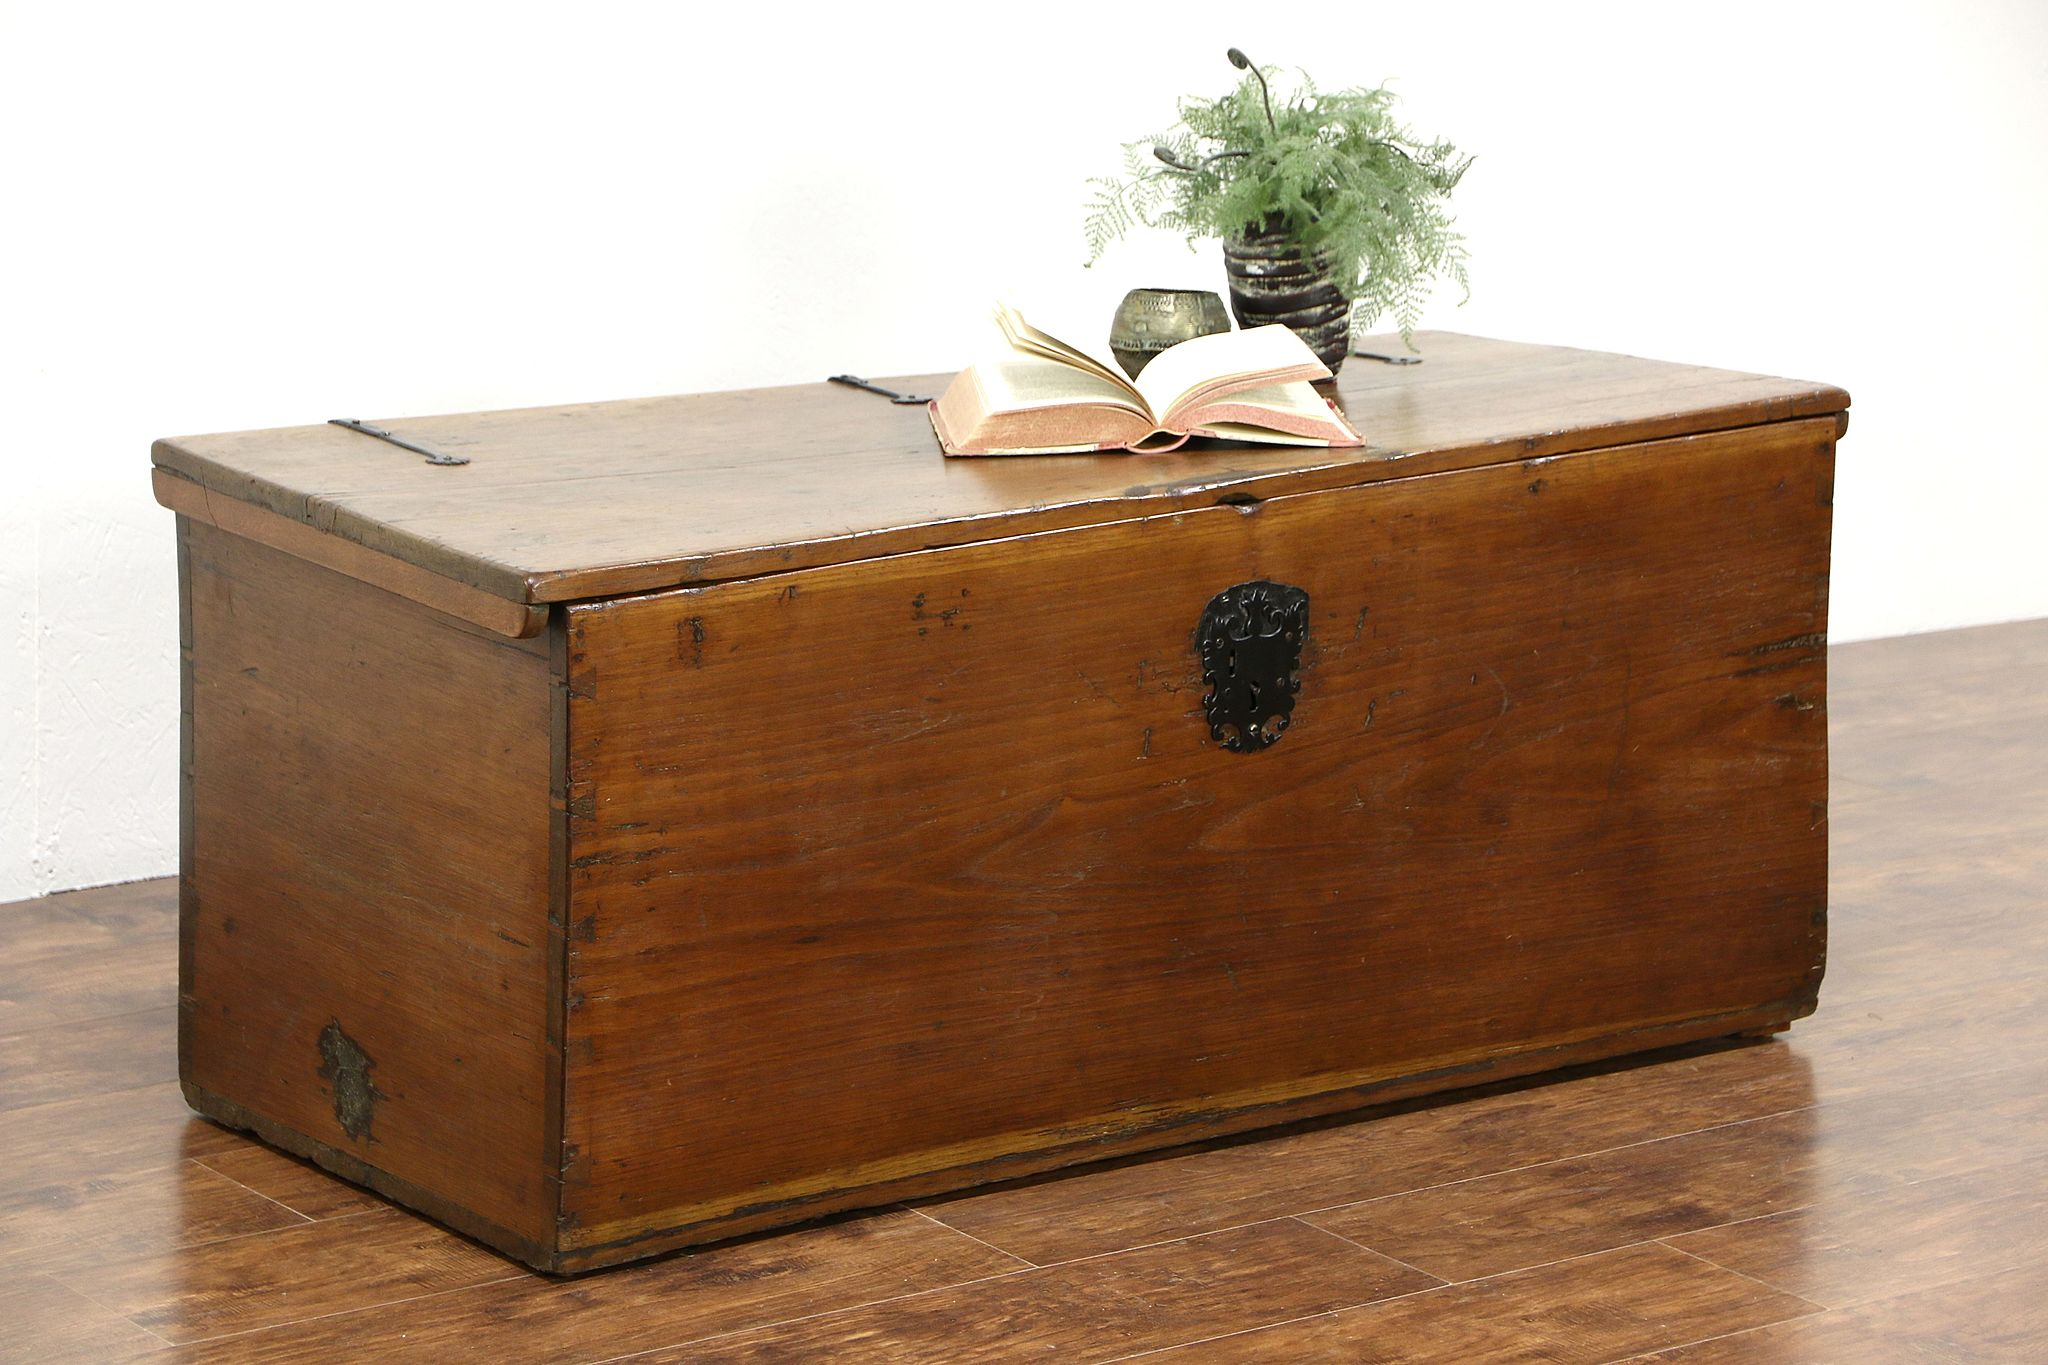 Walnut 1840 S Antique Chest Or Trunk